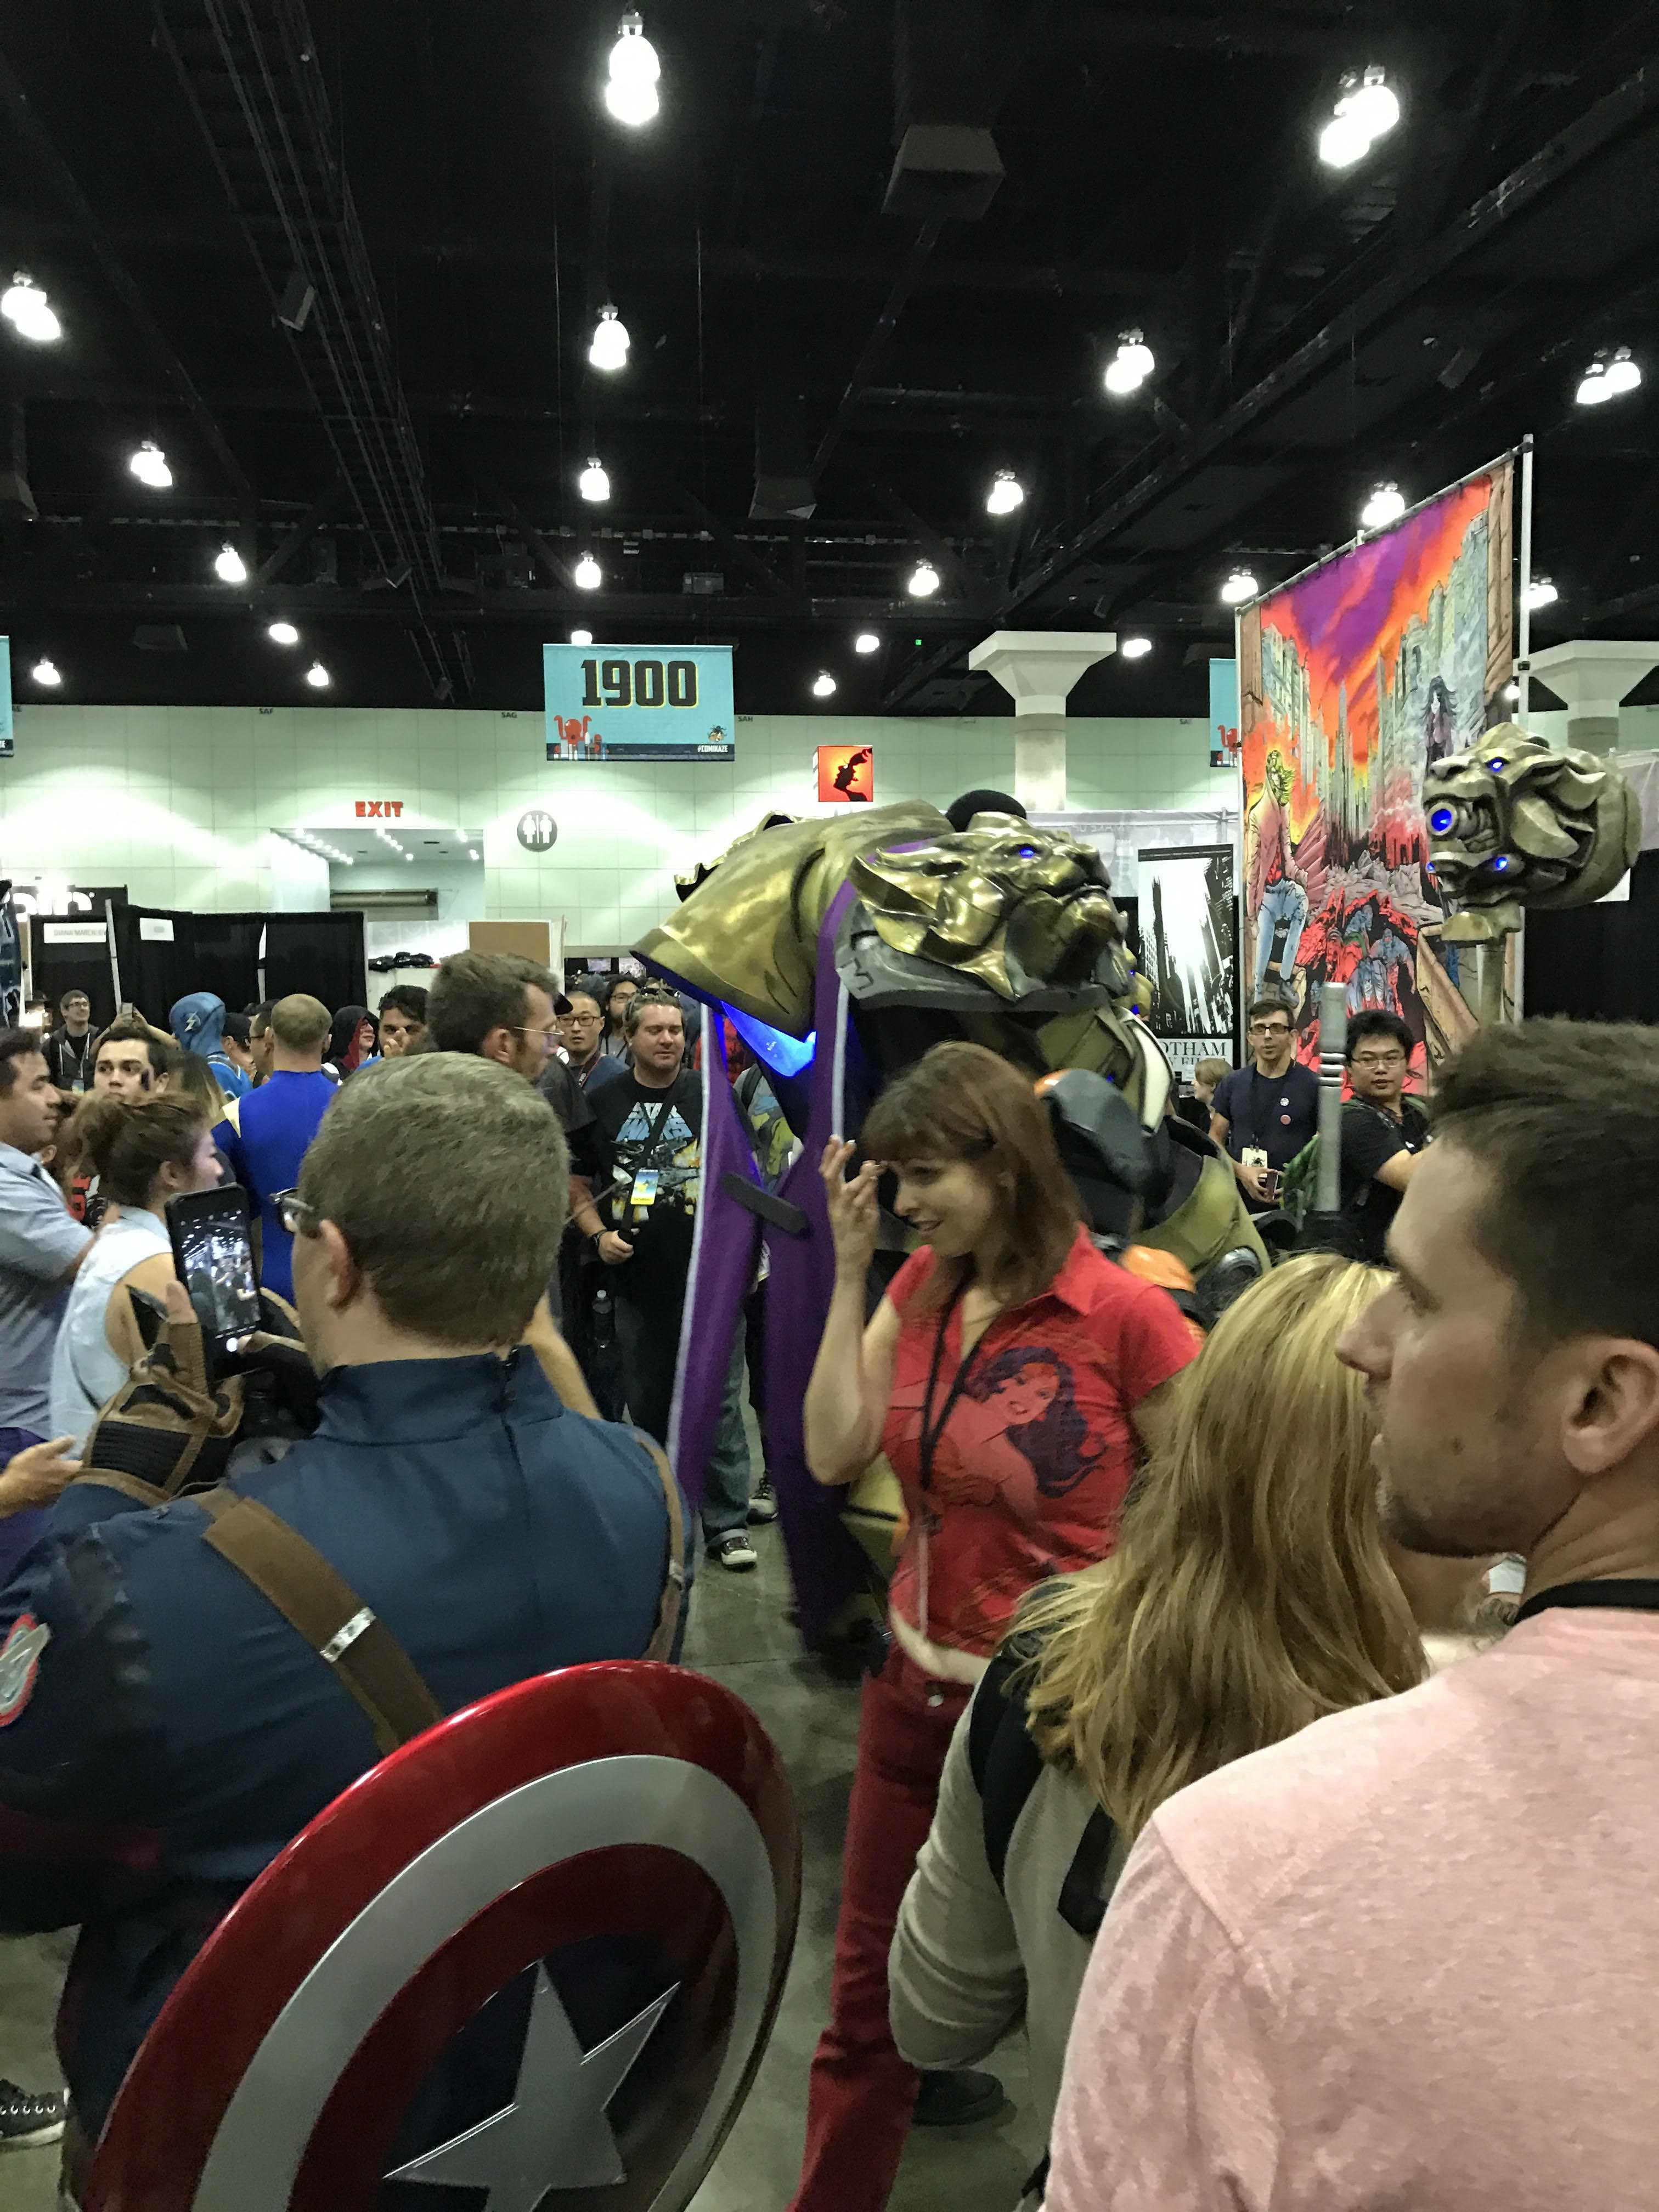 Photo shows man dressed as Captain America along with several other convention atendees